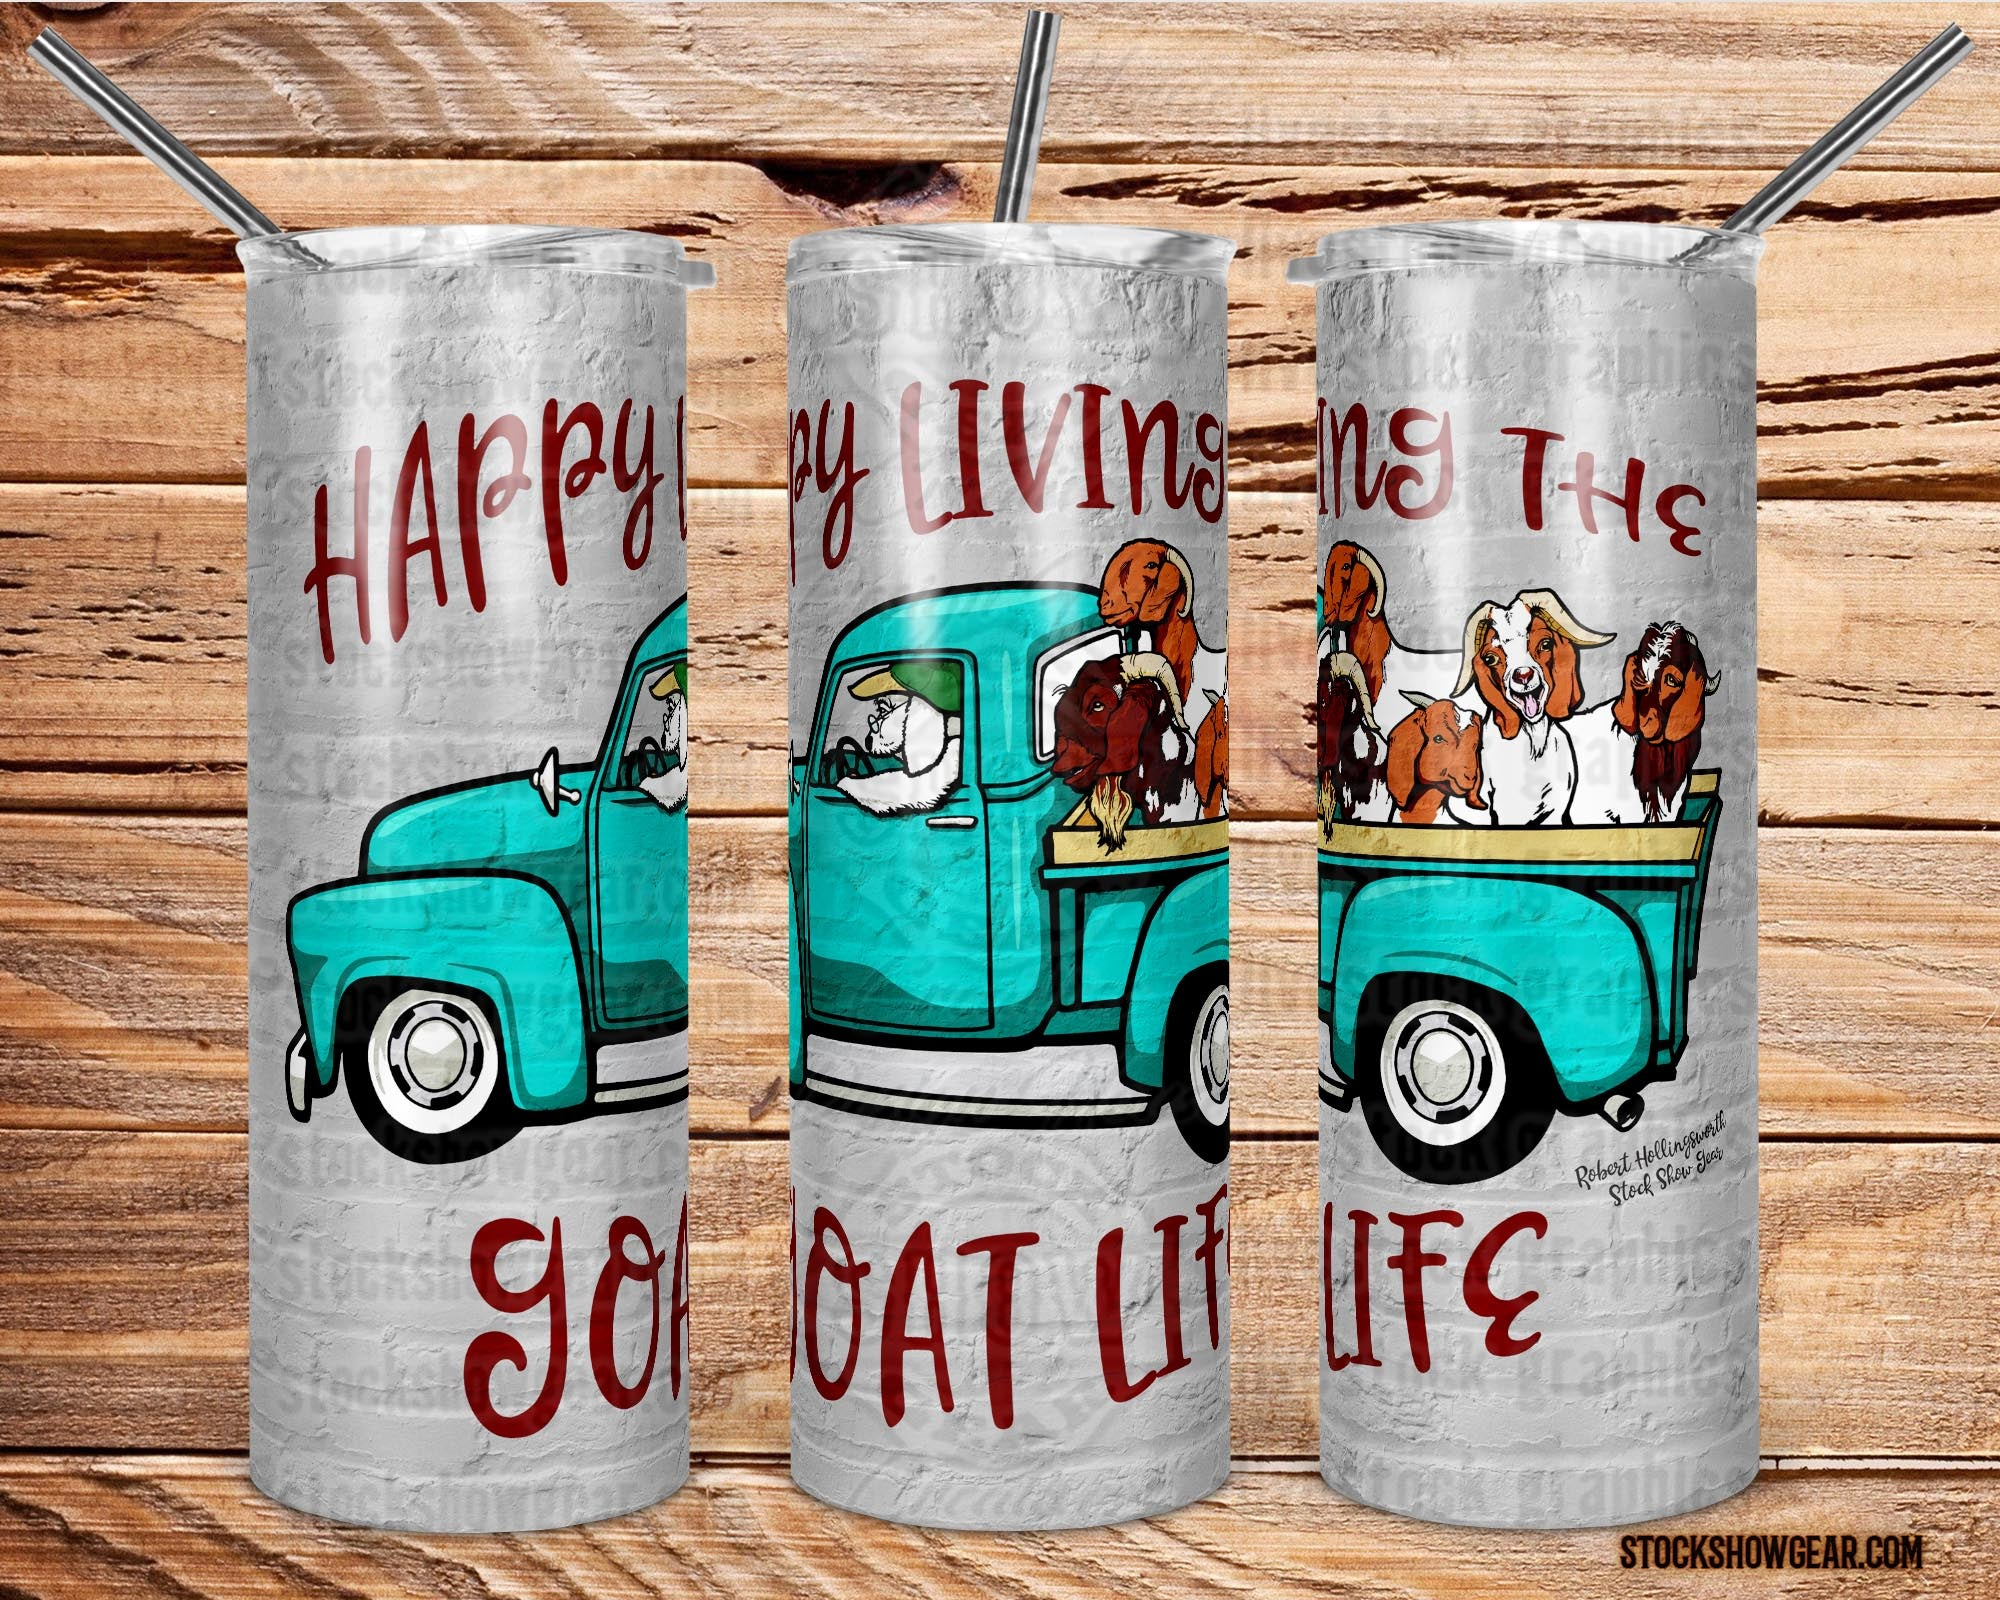 Happy Living the Goat Life Skinny Tumbler with Straw